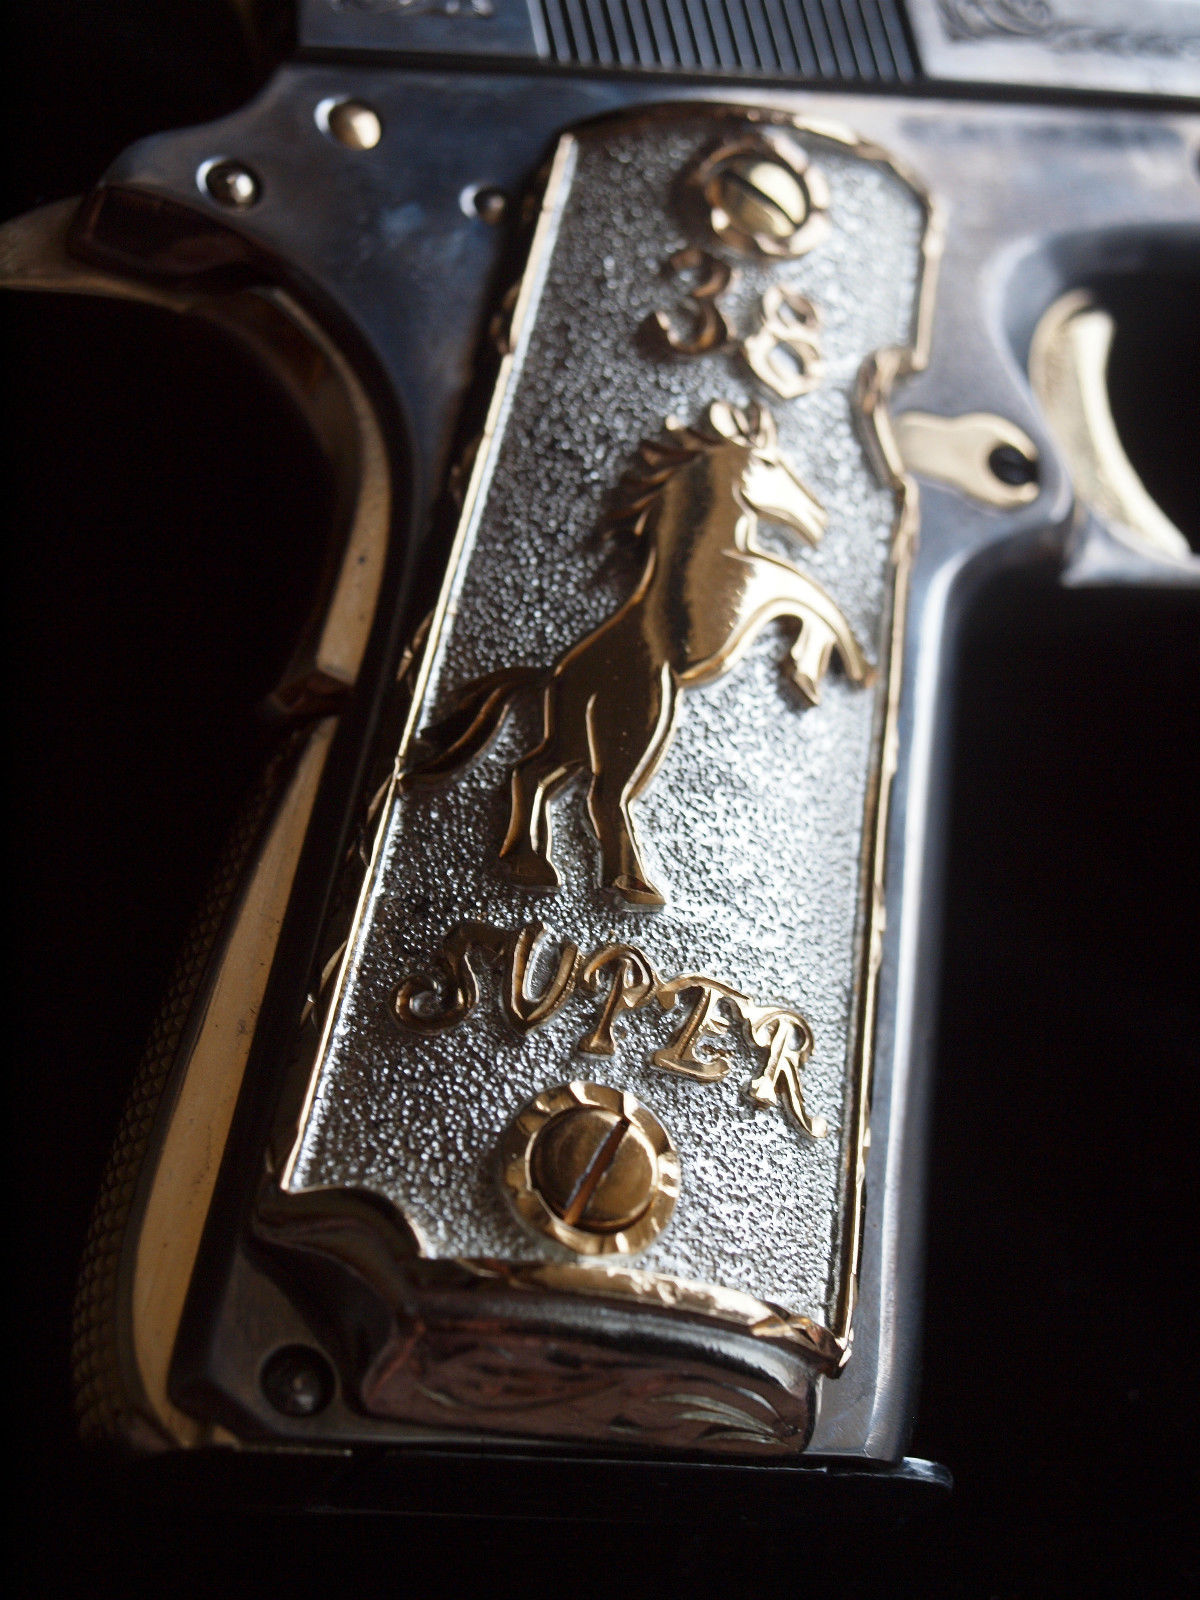 1911 Grips 38 Super with Rearing Colt Pony